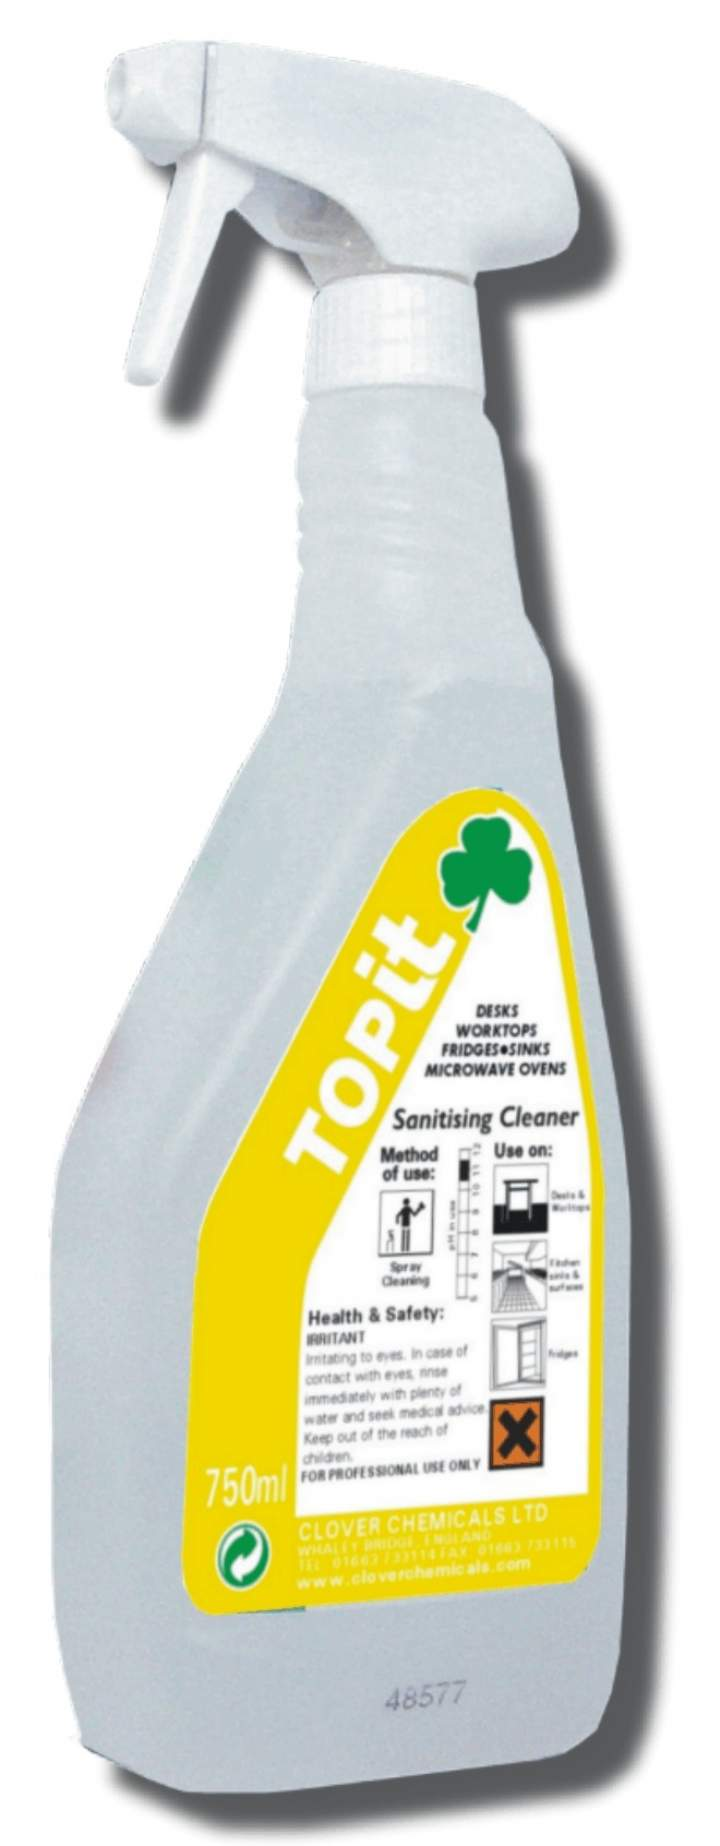 TOPIT SANITISING CLEANER RTU - 6x750ml